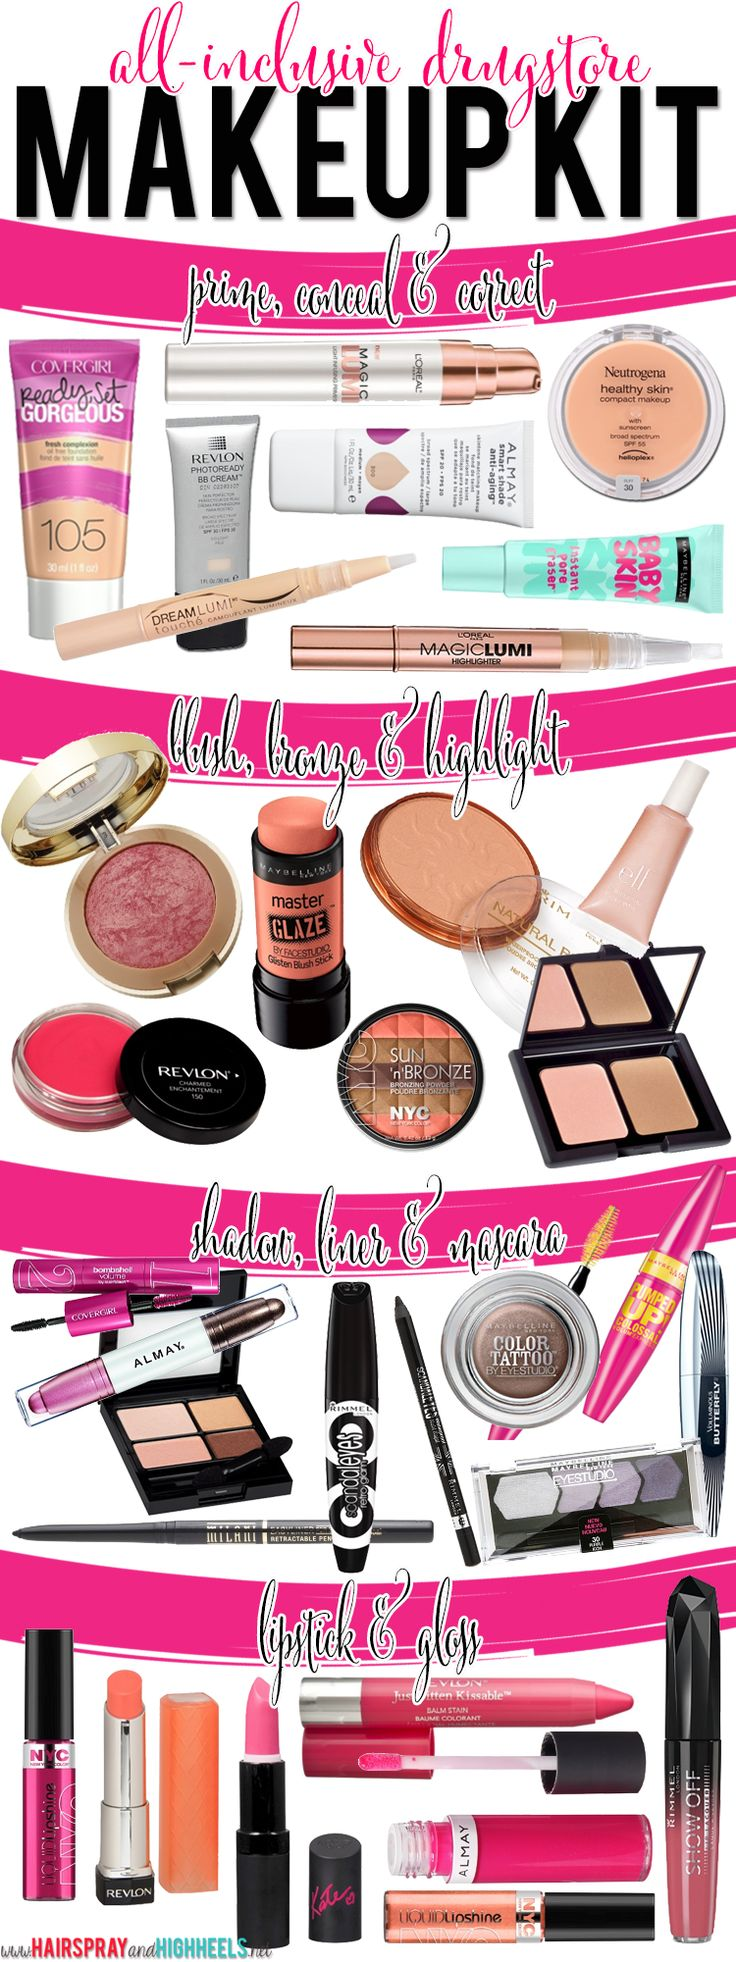 All-Inclusive Drugstore Makeup Kit! All the products that are hot at the drugstore this year! #beauty #makeup